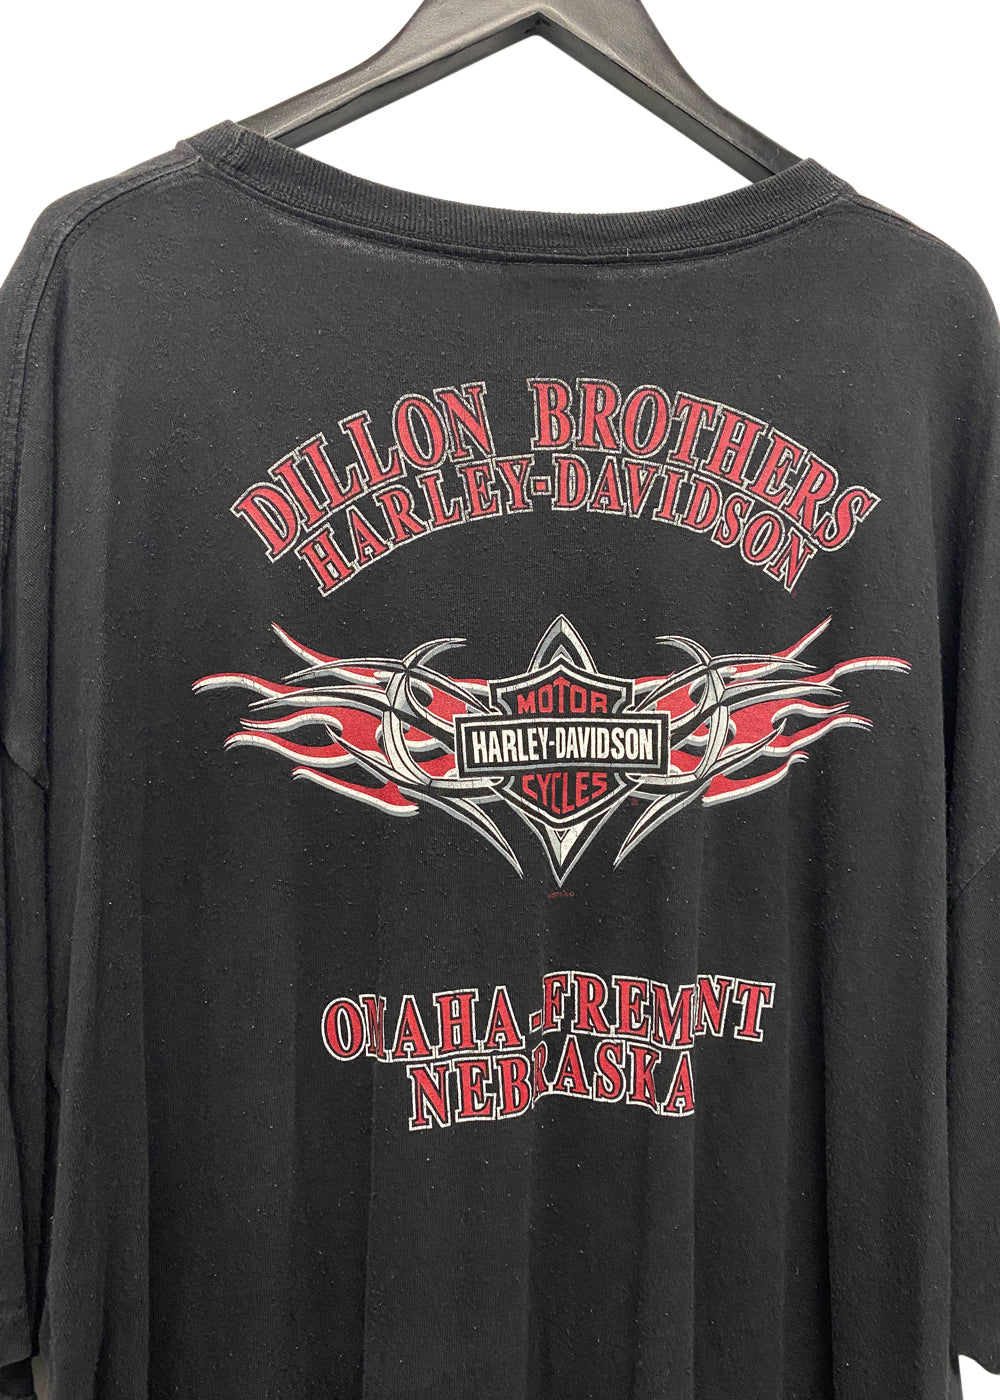 THE NOTORIOUS B.I.G VINTAGE TEE